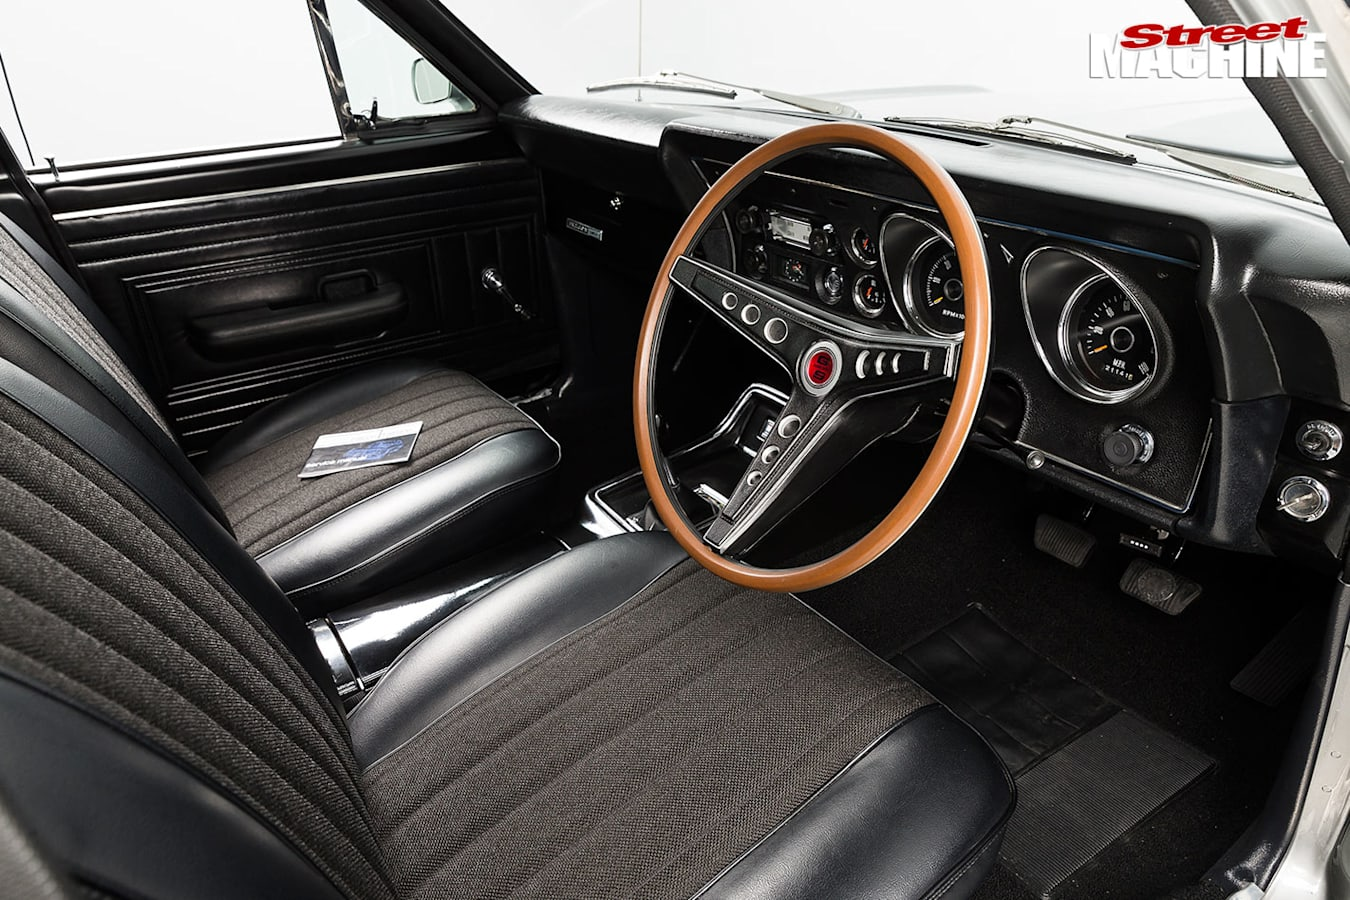 Ford Falcon XW GS panel van interior front